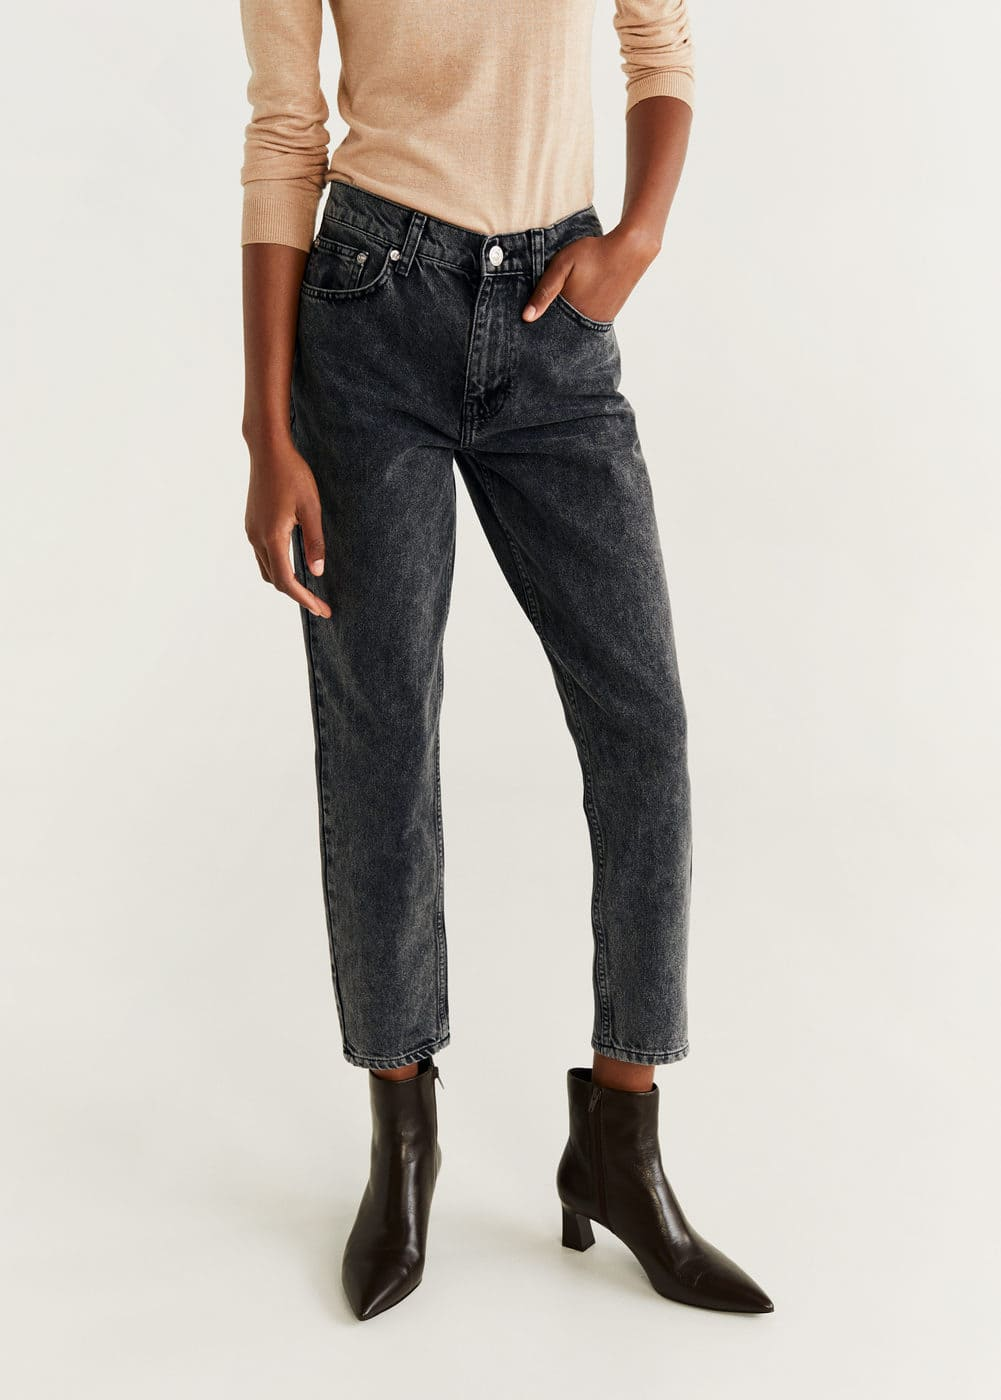 m-mom80:jeans mom-fit